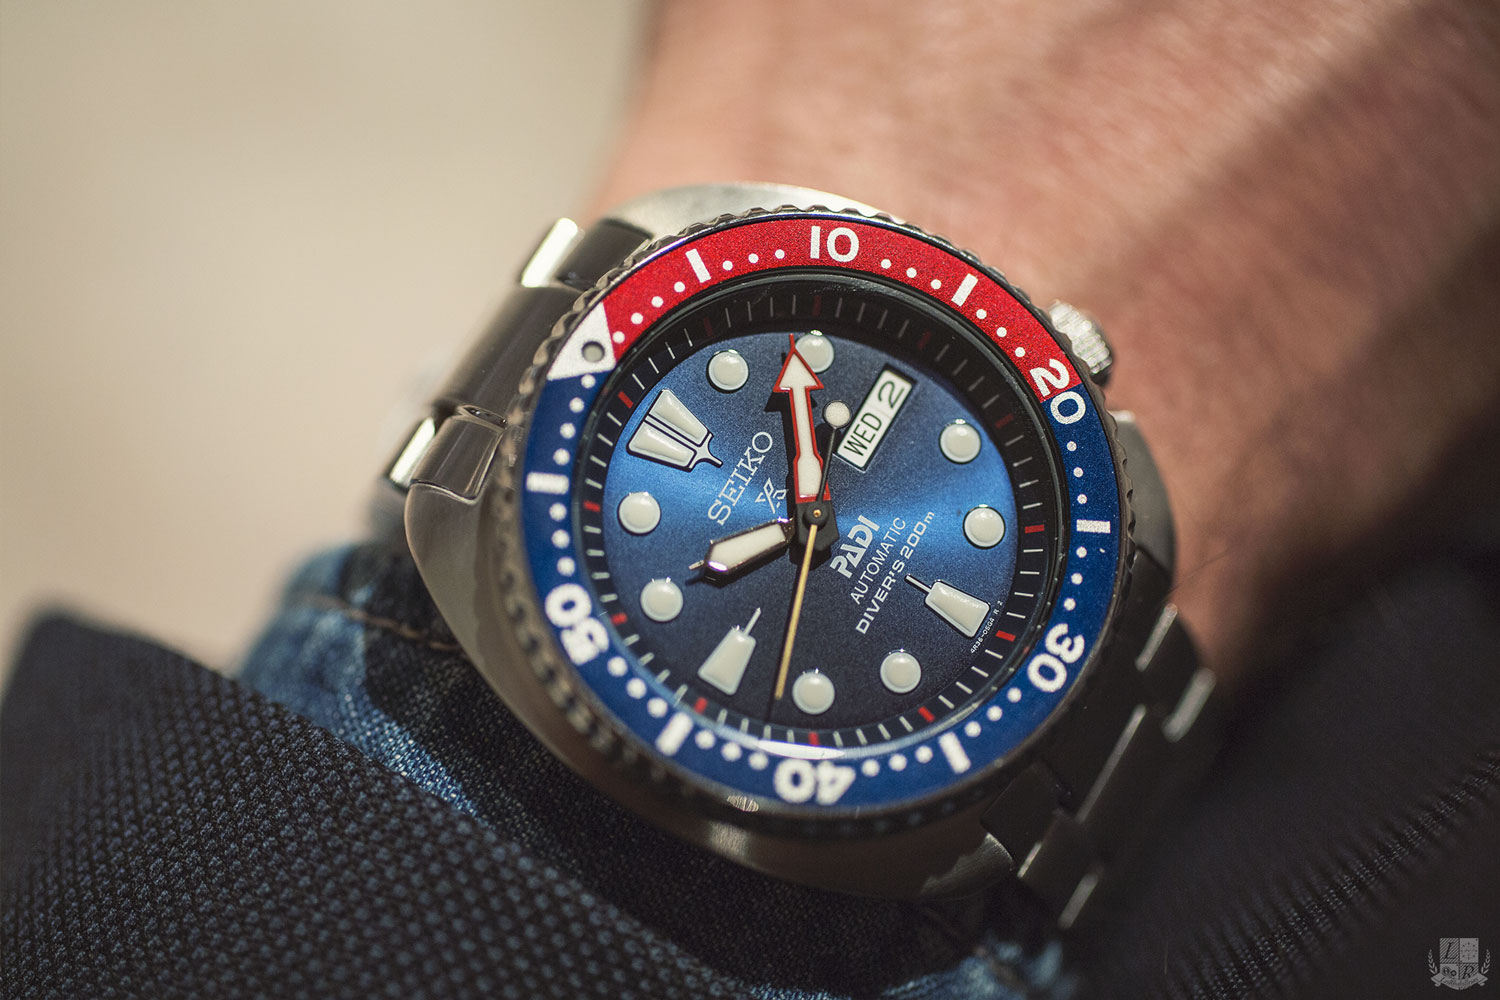 Seiko Padi The Dive Watch Connection